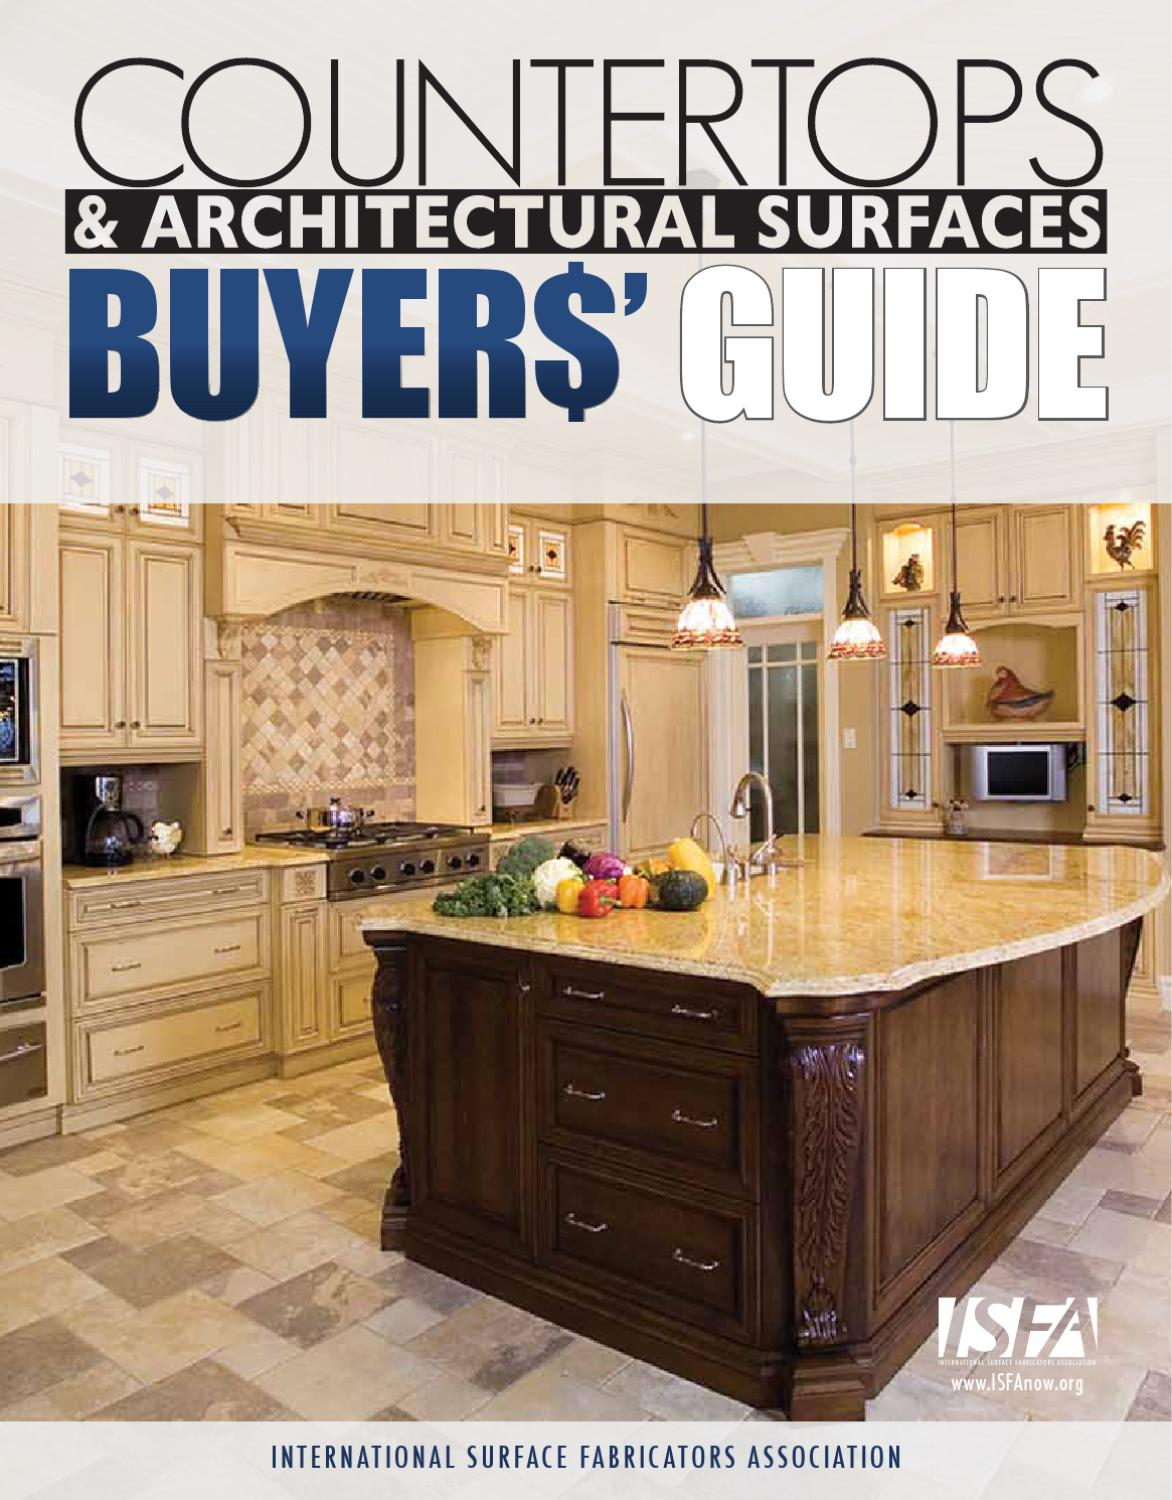 Isfa Countertops Architectural Surfaces Buyers Guide 2010 By Isfa Issuu